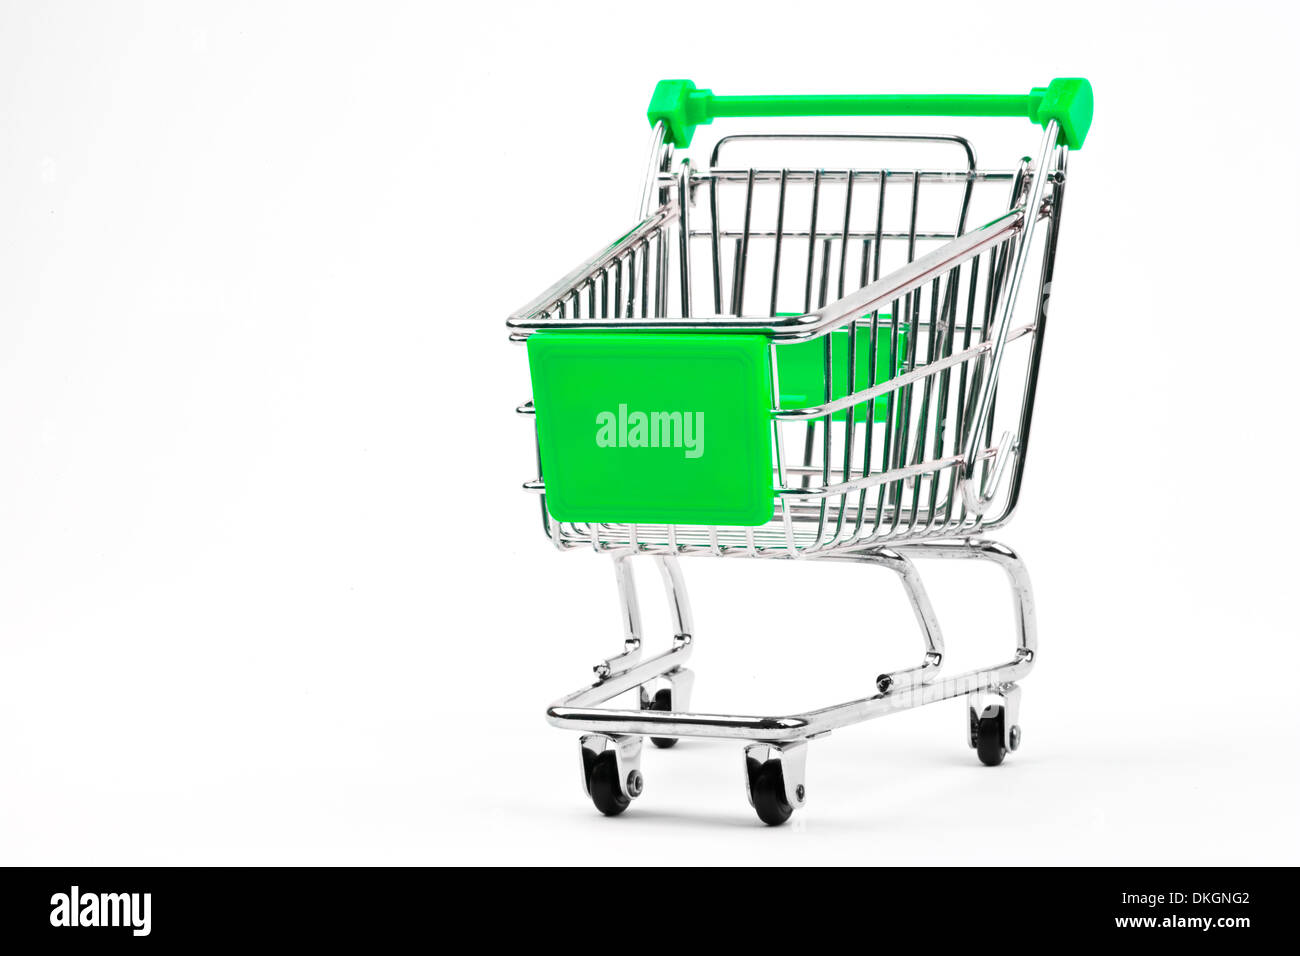 Shopping Trolley over a plain white background. Stock Photo